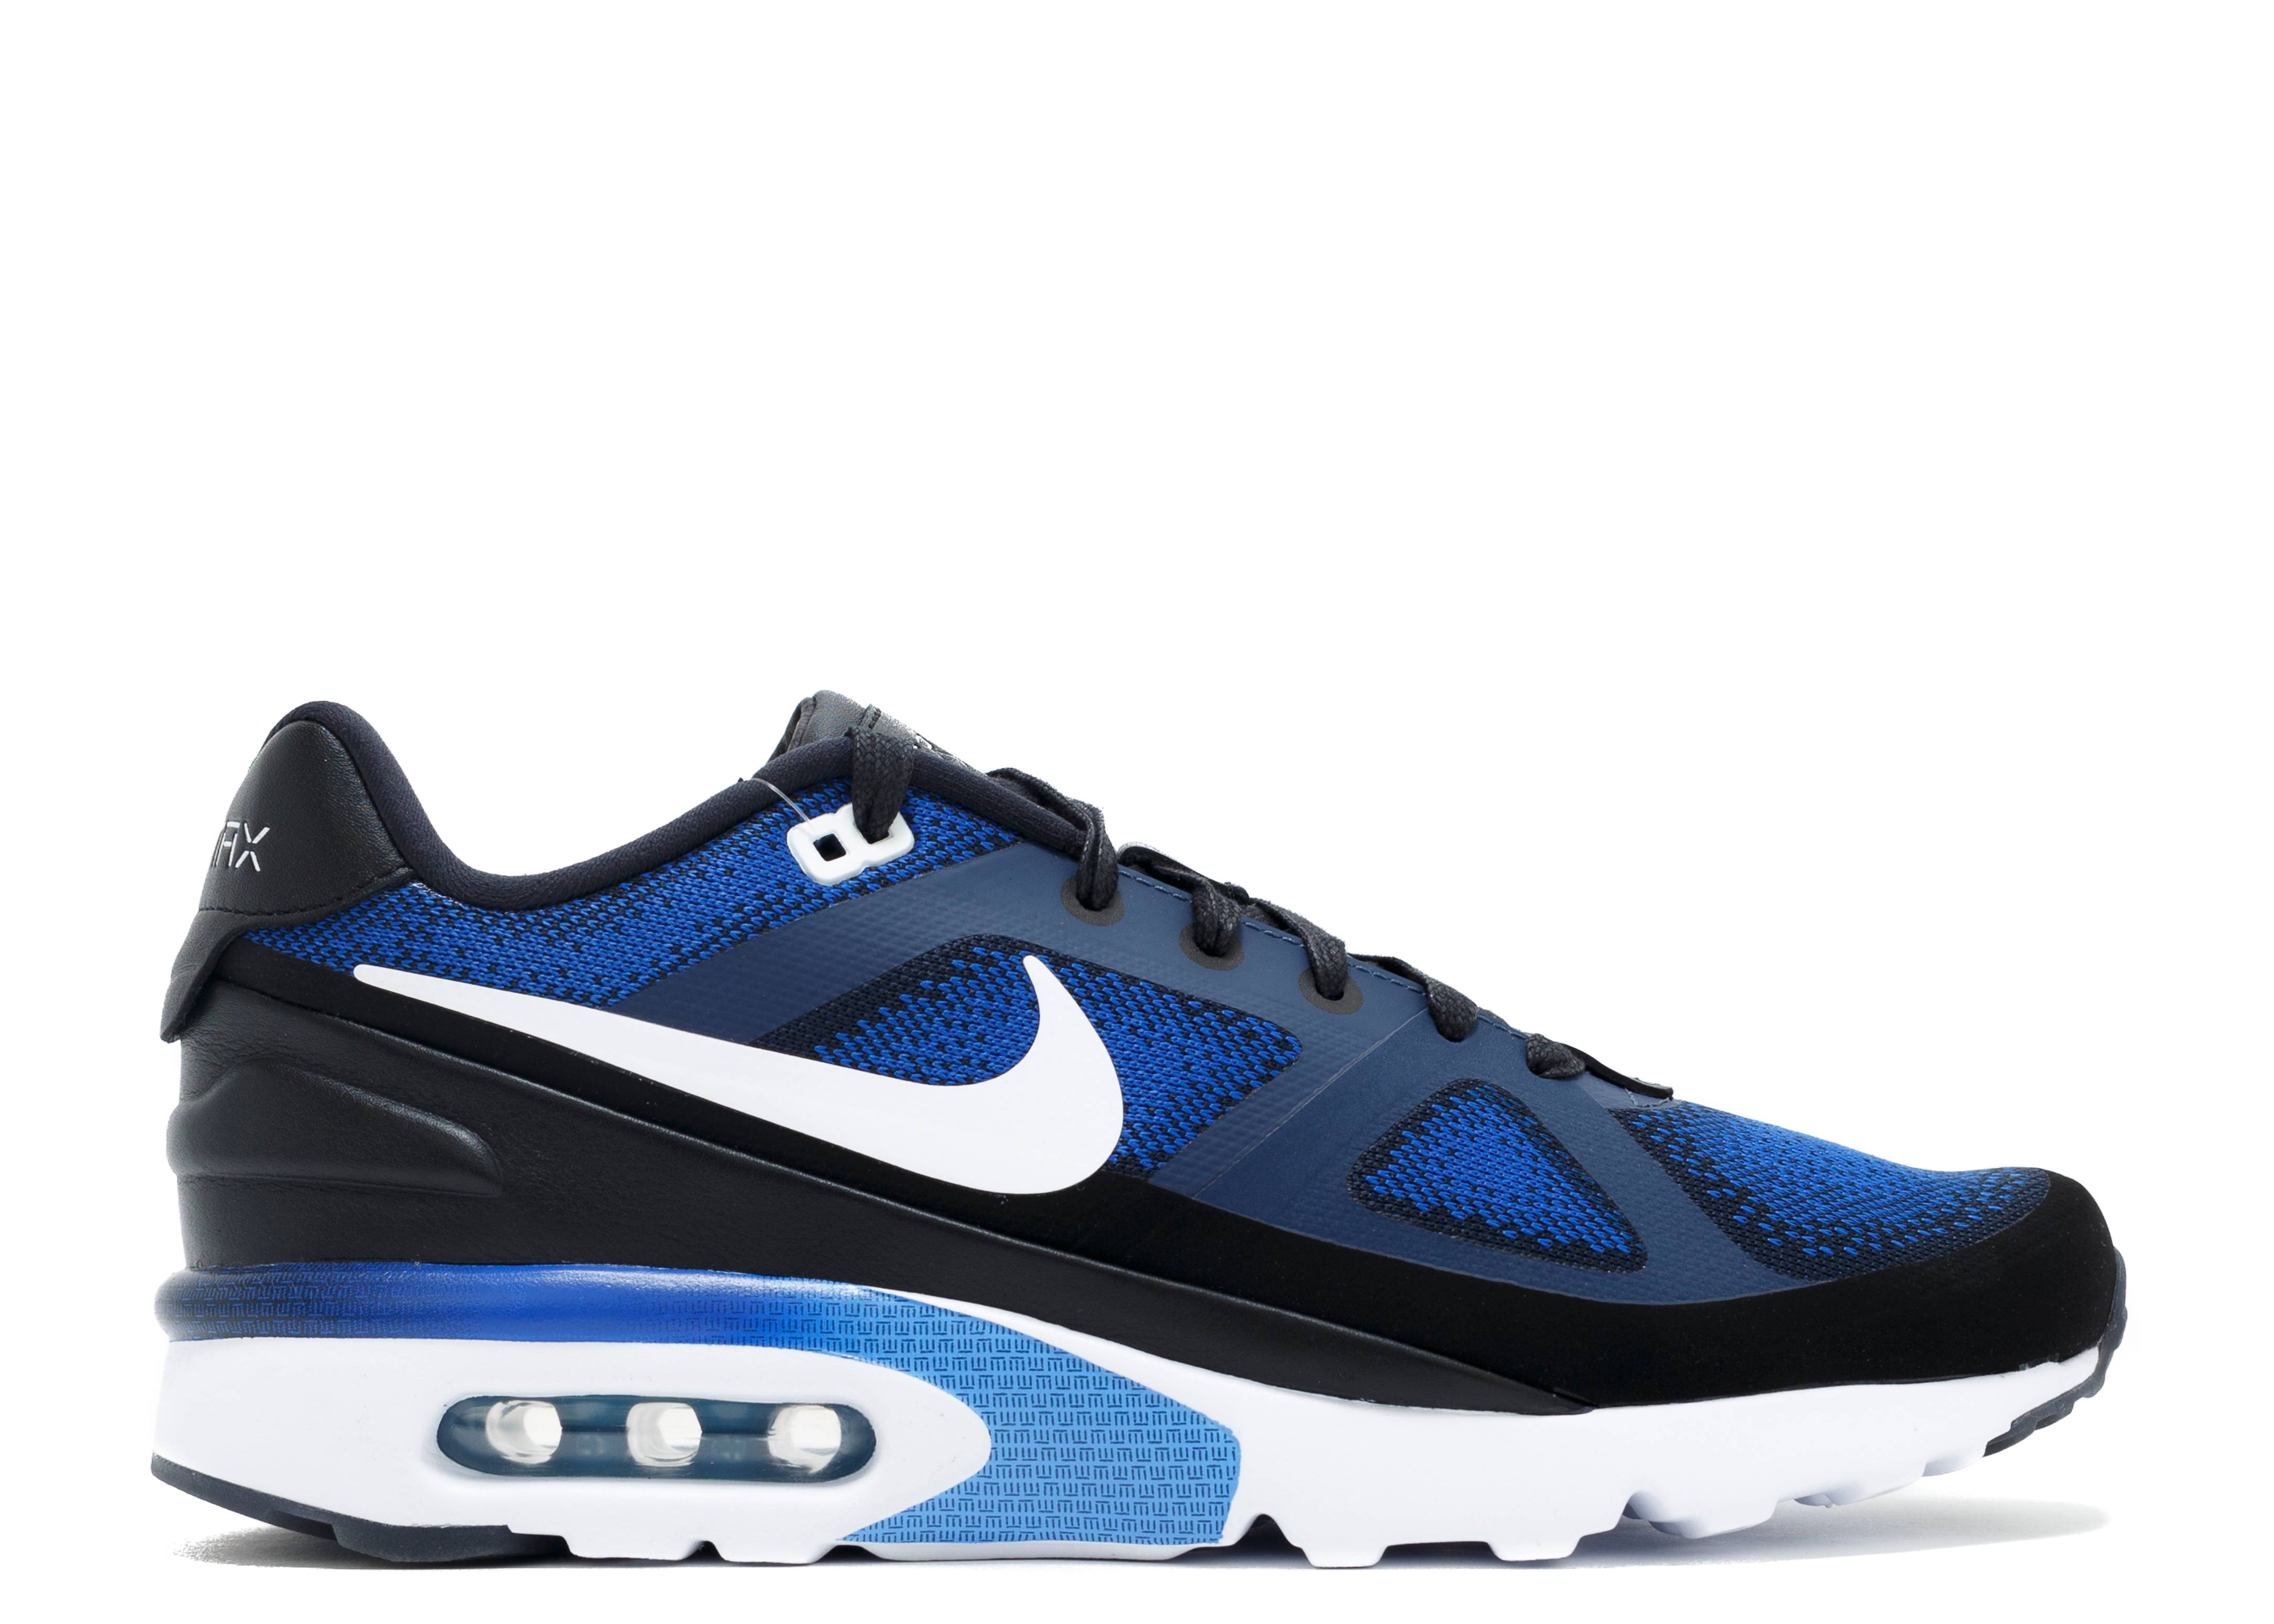 Men's Nike Air Max MP Ultra HTM M Mark Parker Deep Royal Blue Sneakers : U28b8168